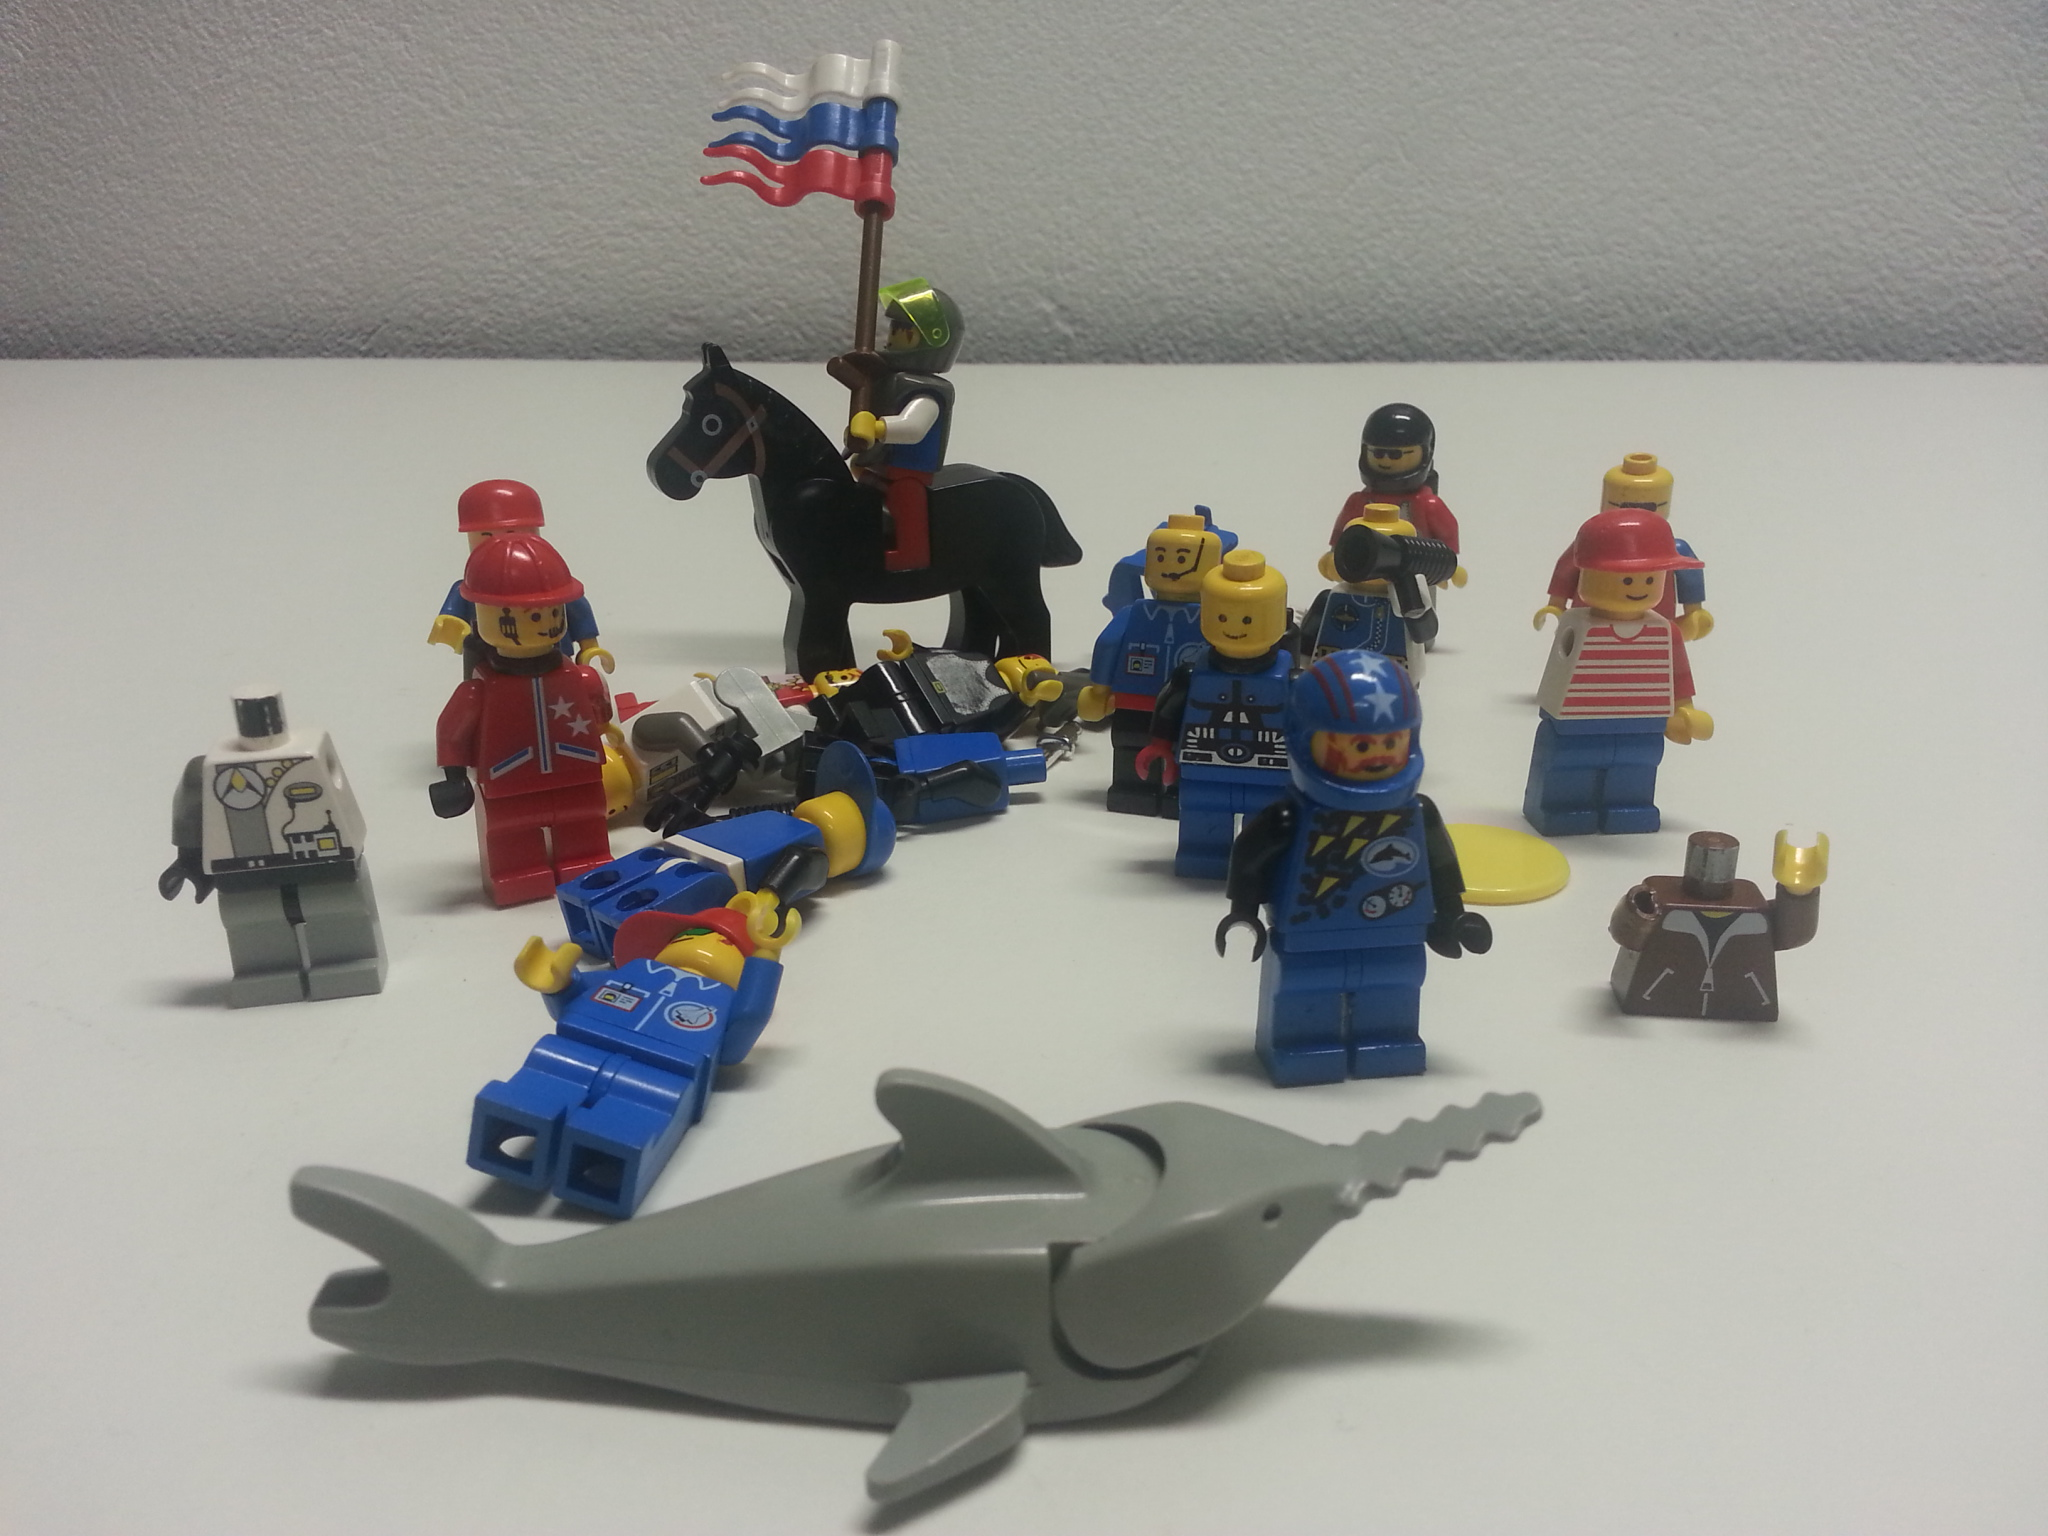 Lego people (and a shark)